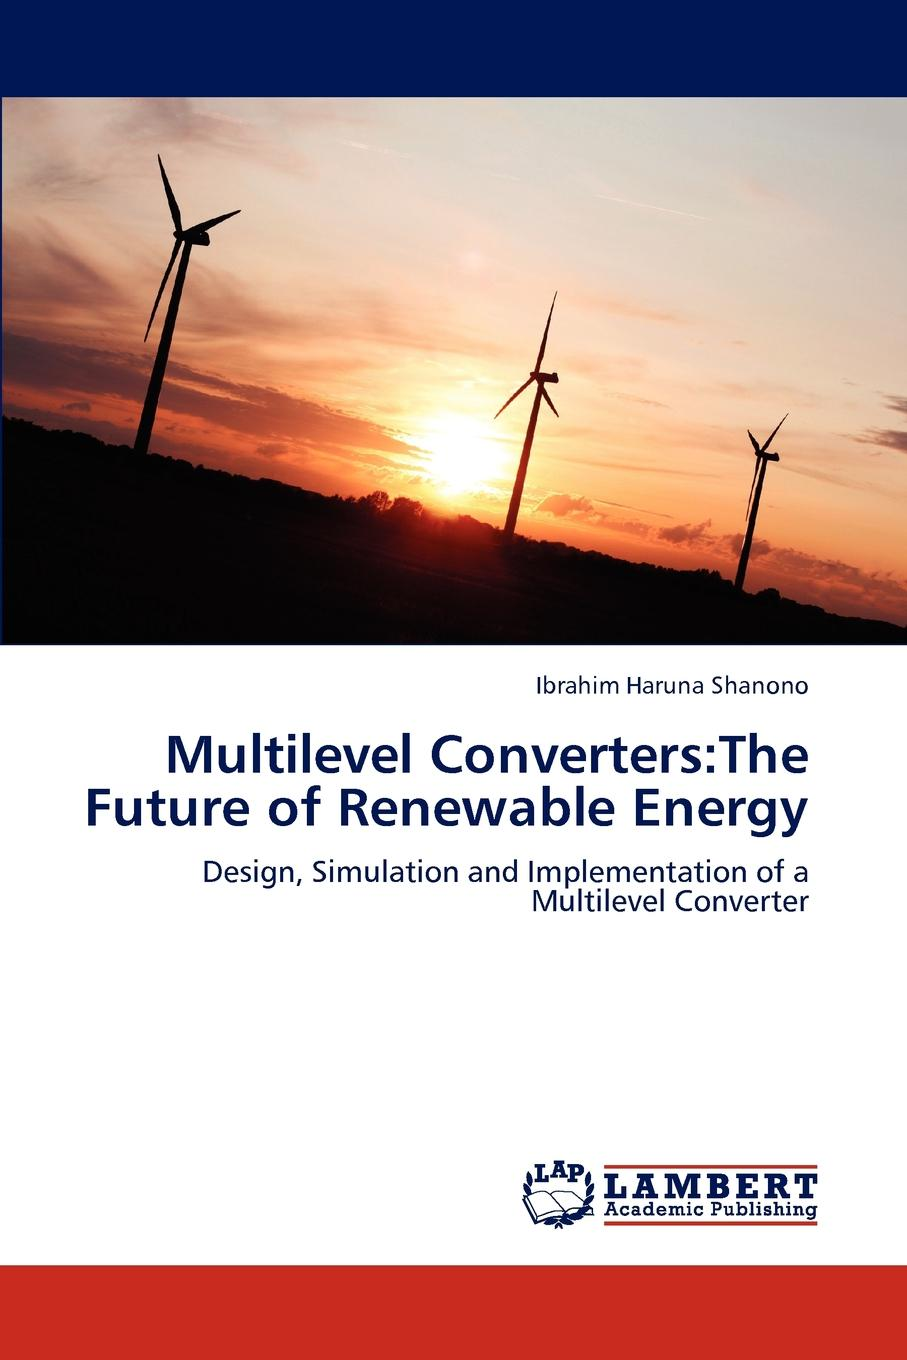 Haruna Shanono Ibrahim Multilevel Converters. The Future of Renewable Energy nina rae springfields the power of hope